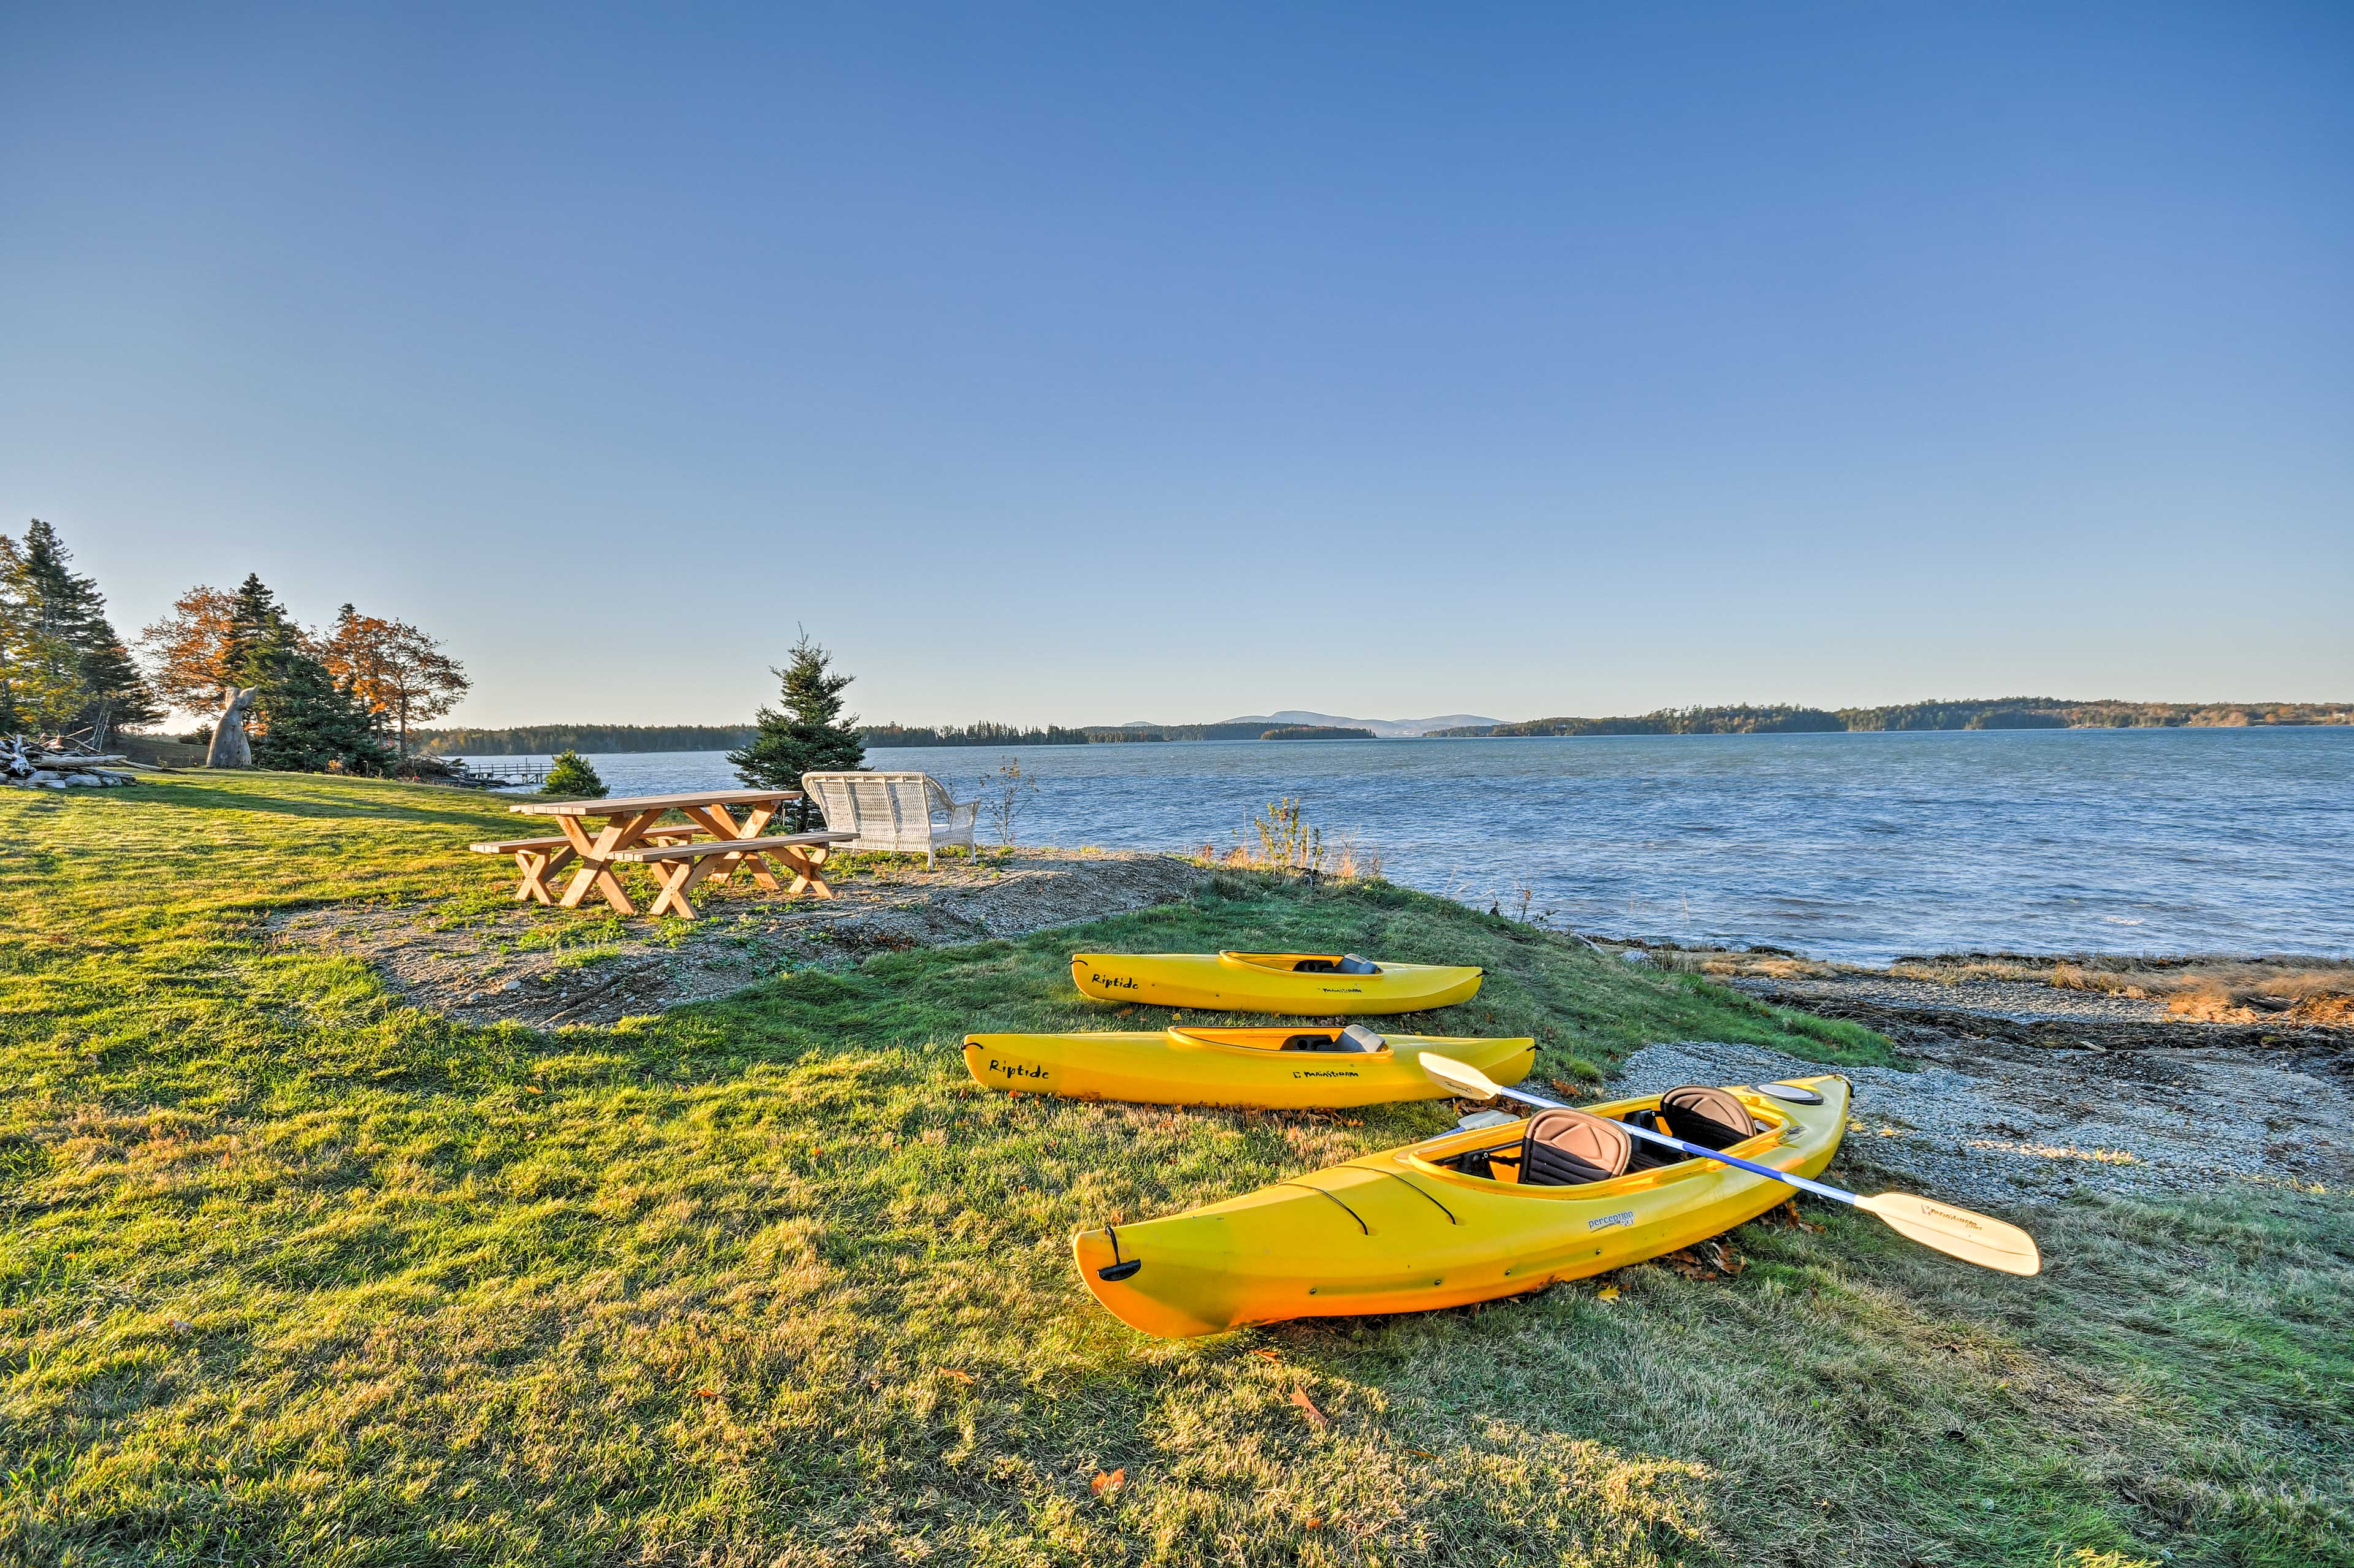 Take a kayak trip out onto the ocean - just one of the many perks!